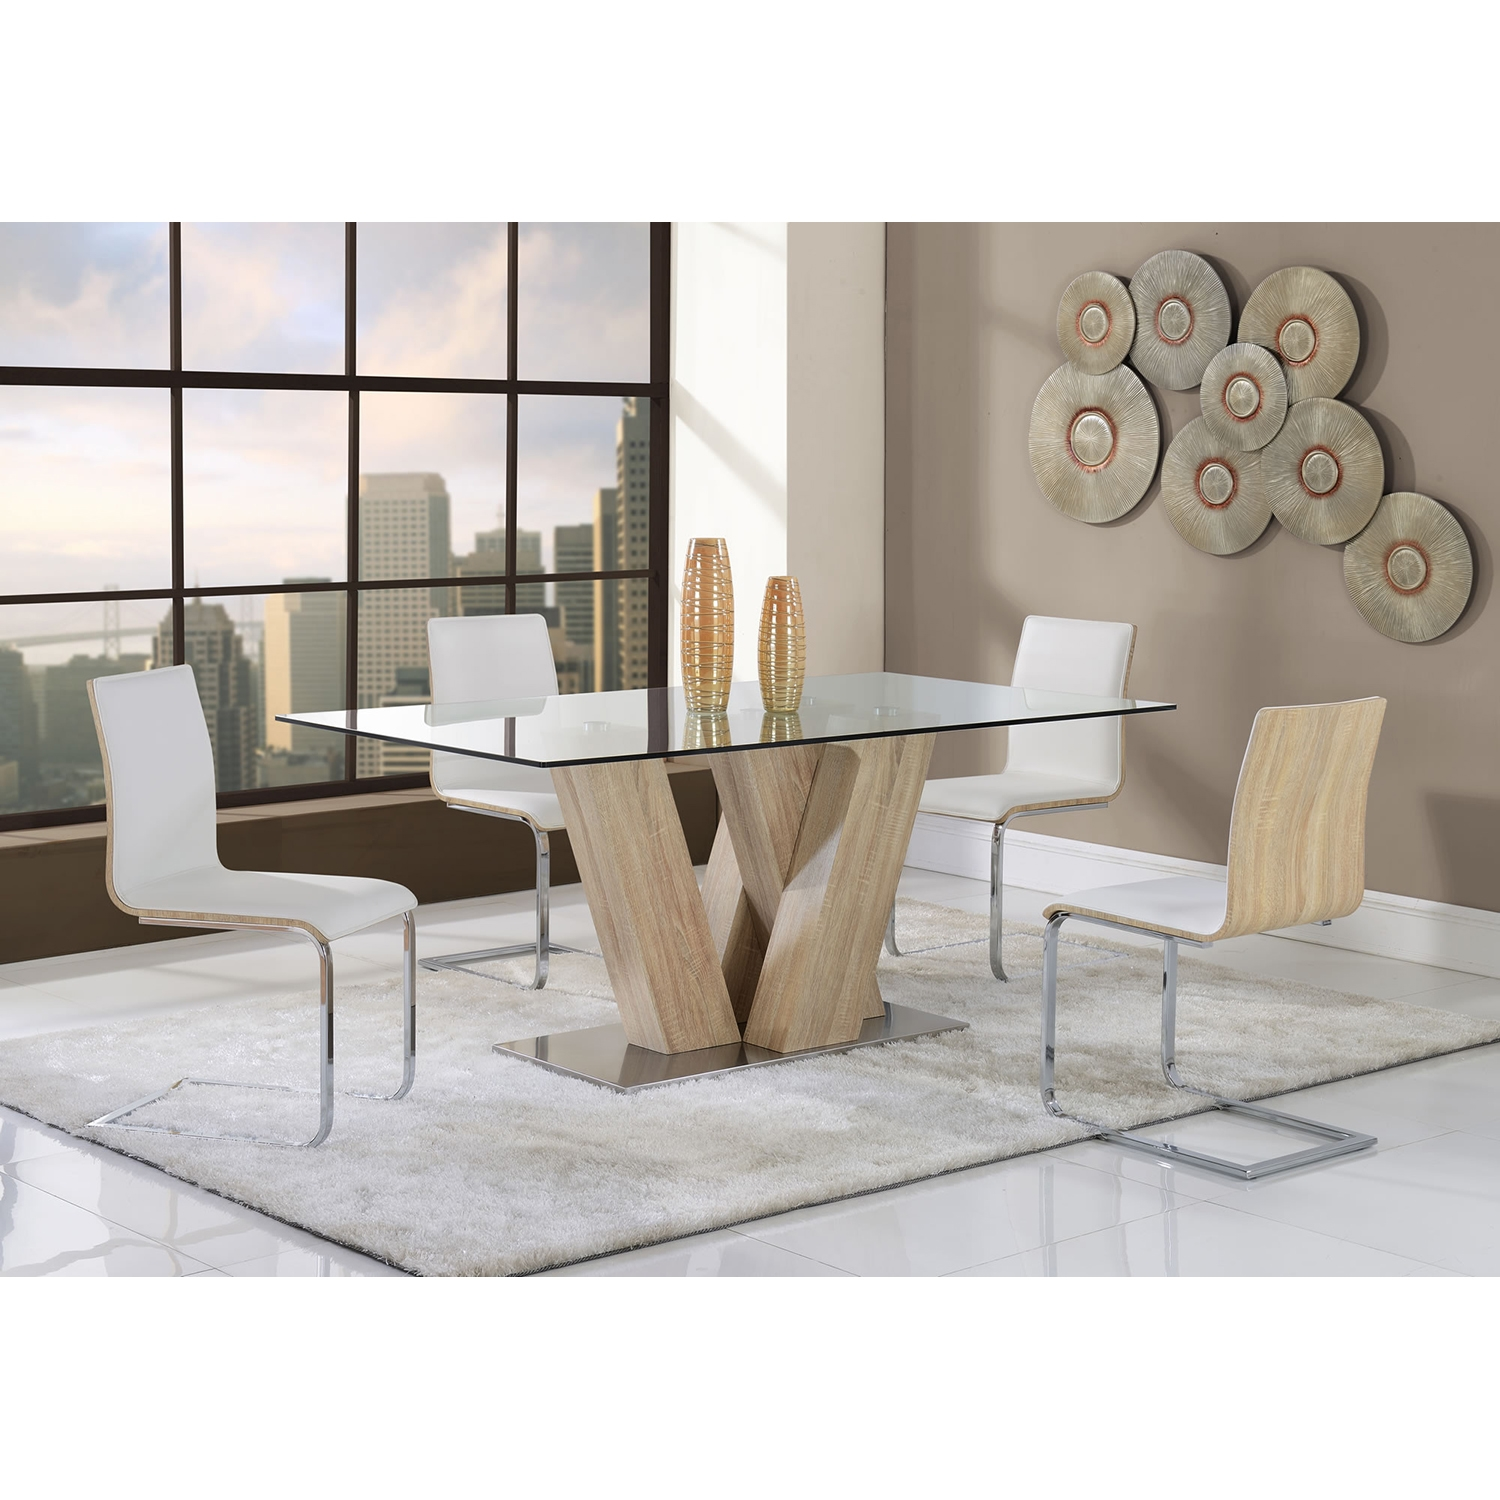 Arianna 5-Piece Dining Set in White - GLO-D2123DT-DC-SET